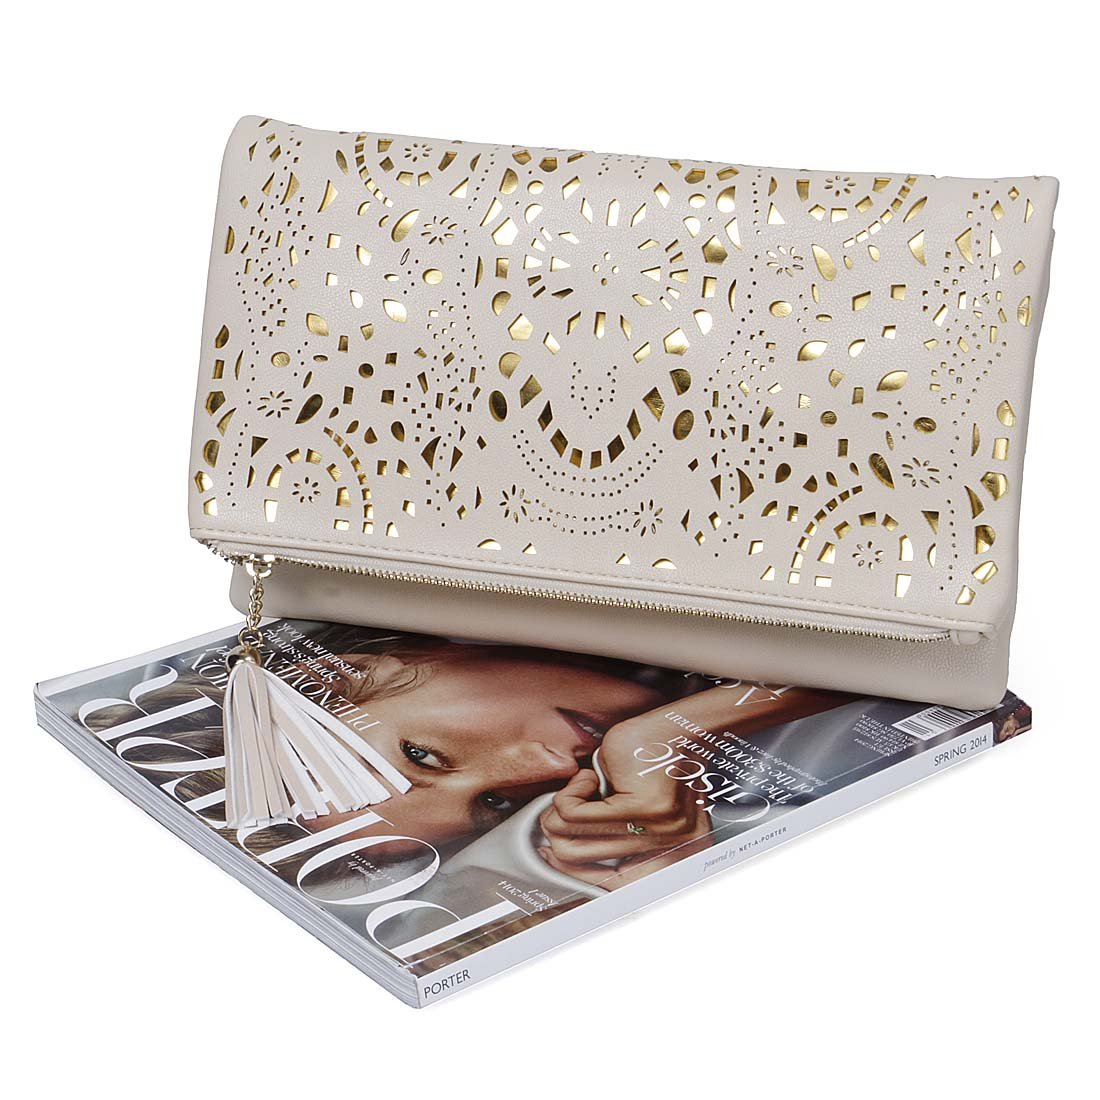 BMC Womens Glimmering Gold Perforated Cut Out Pattern Gold Accent Background Foldover Pouch Fashion Clutch Handbag by b.m.c (Image #7)